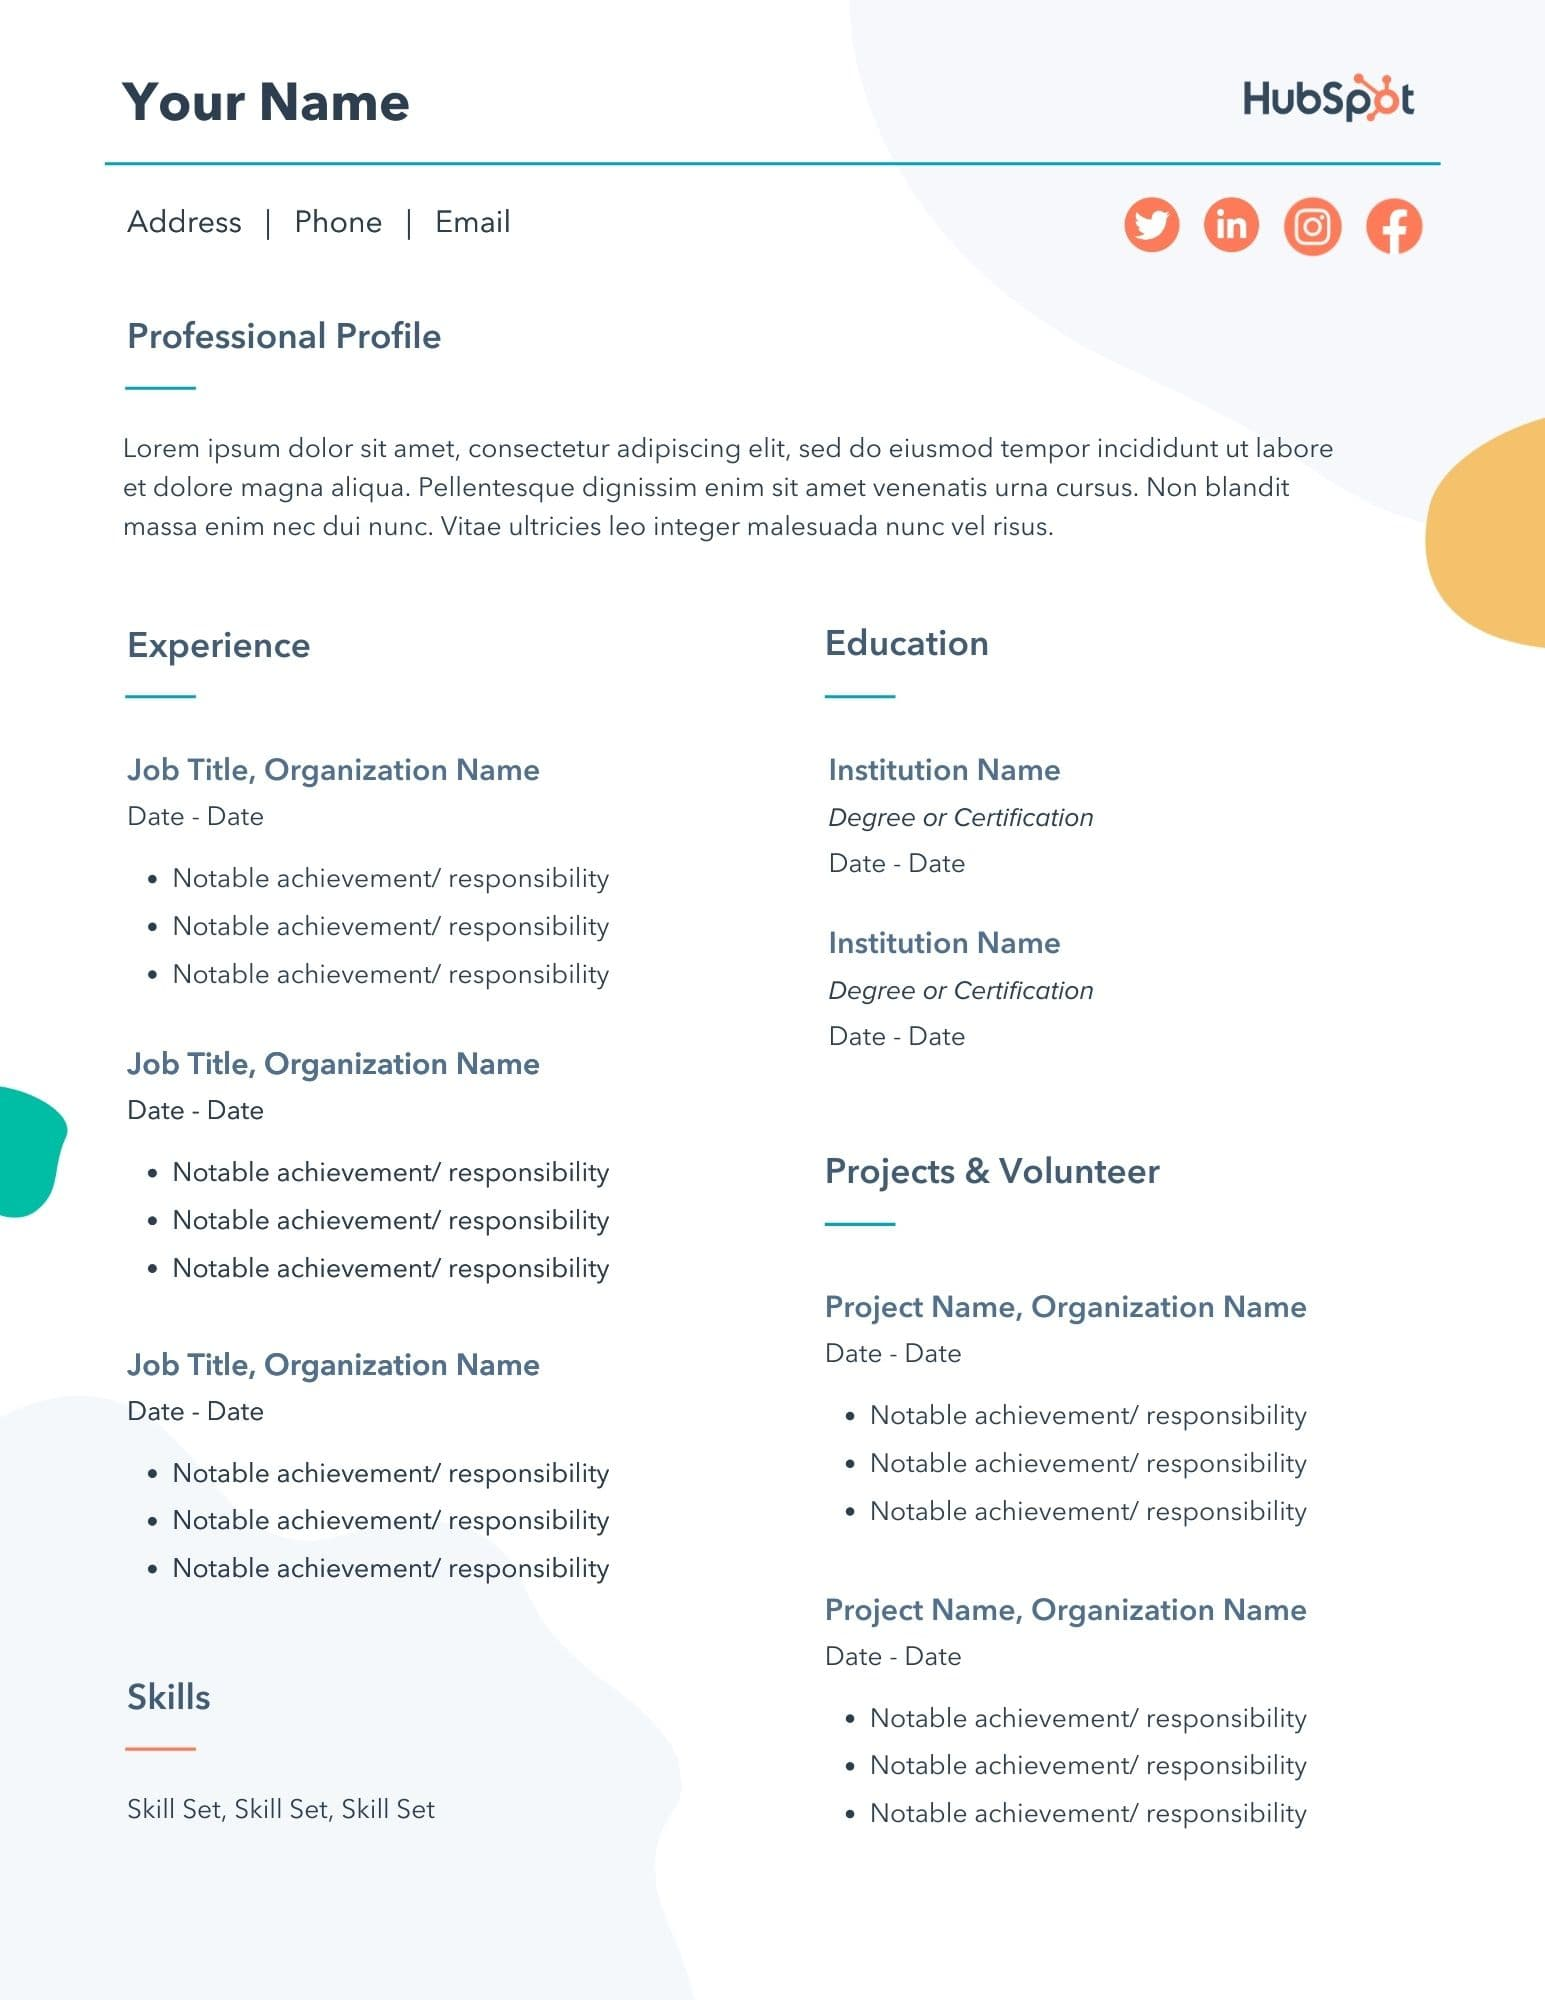 free resume templates for microsoft word to make your own management template paper Resume Management Resume Templates Free